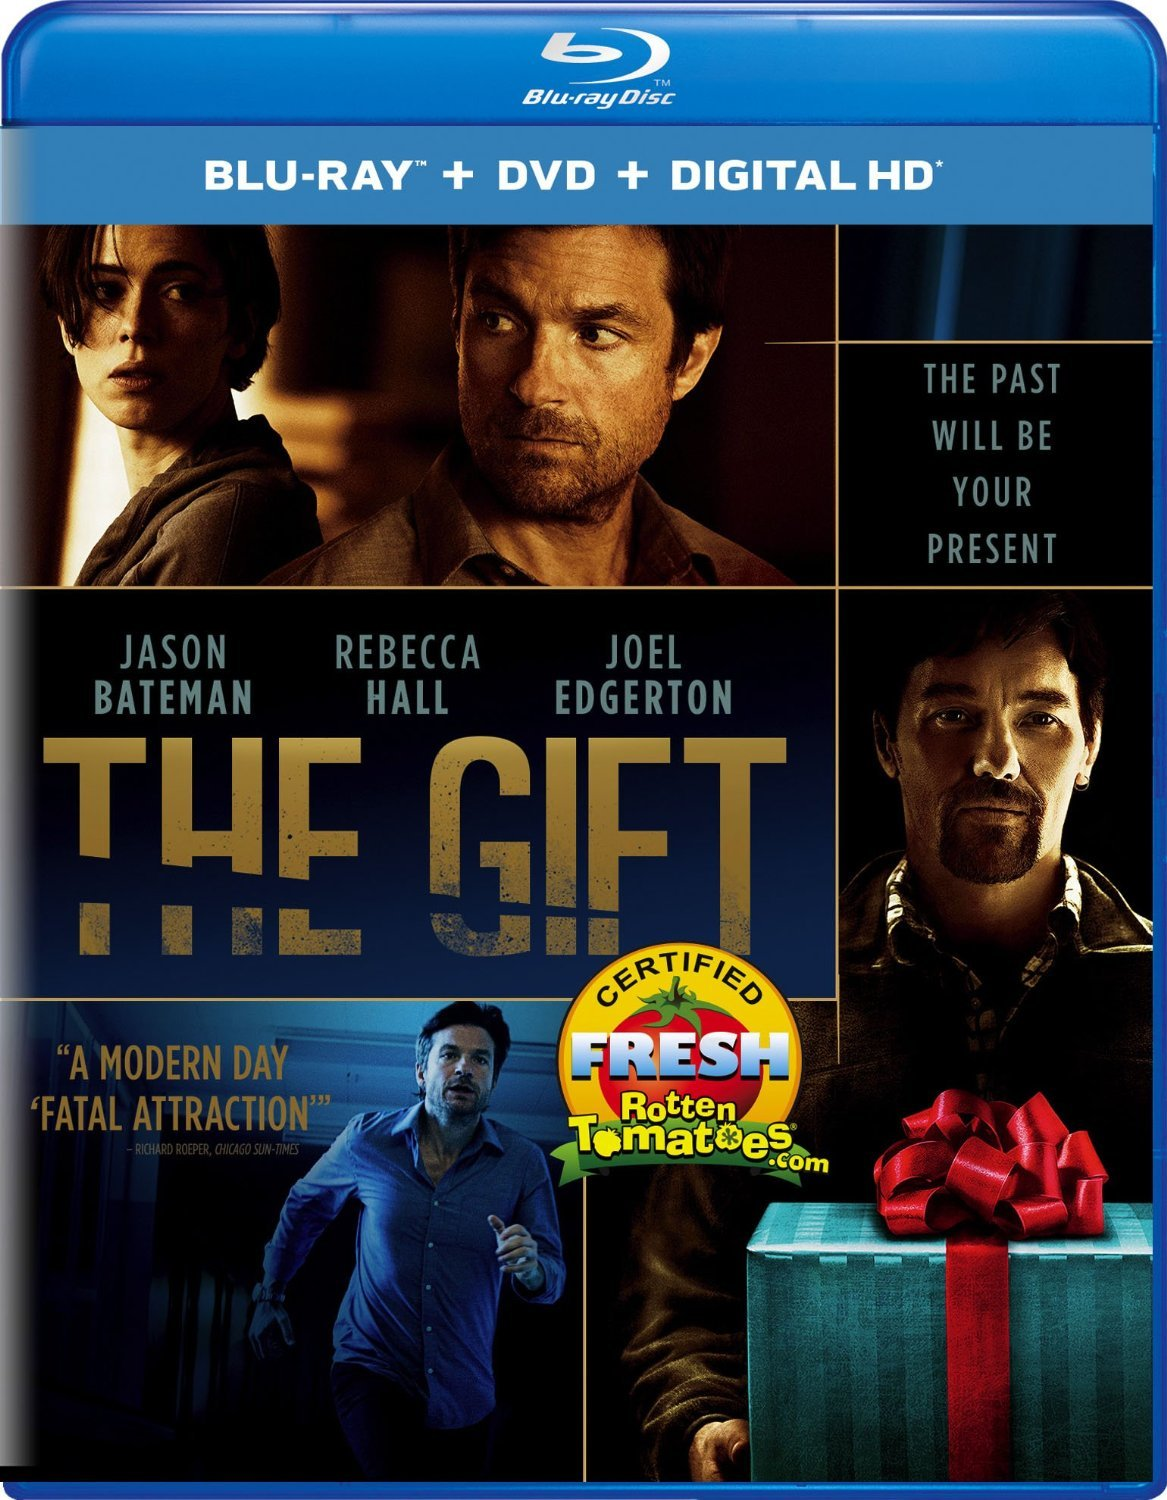 The Gift poster image